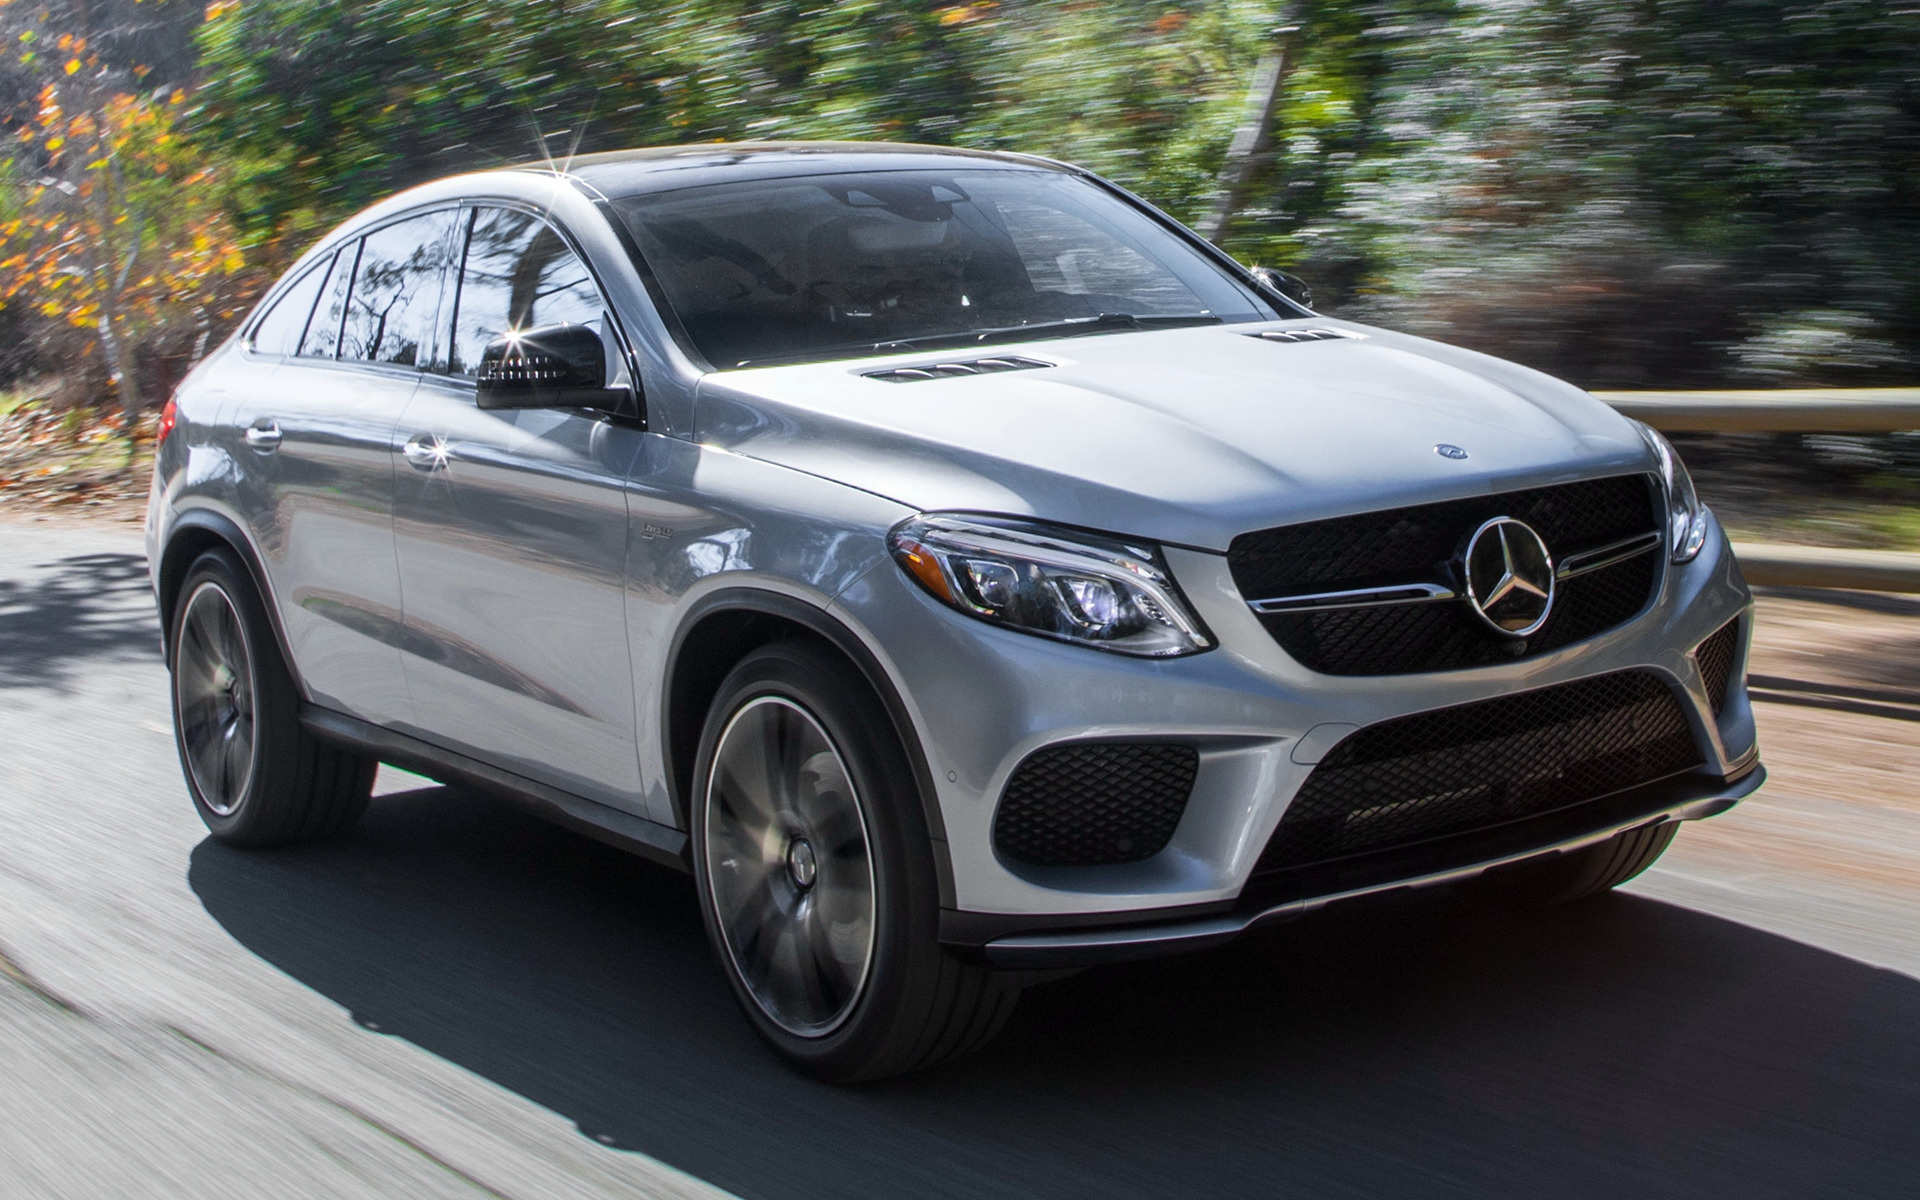 Mercedes Smart Car >> Mercedes-AMG GLE 43 Coupe (2017) US Wallpapers and HD Images - Car Pixel